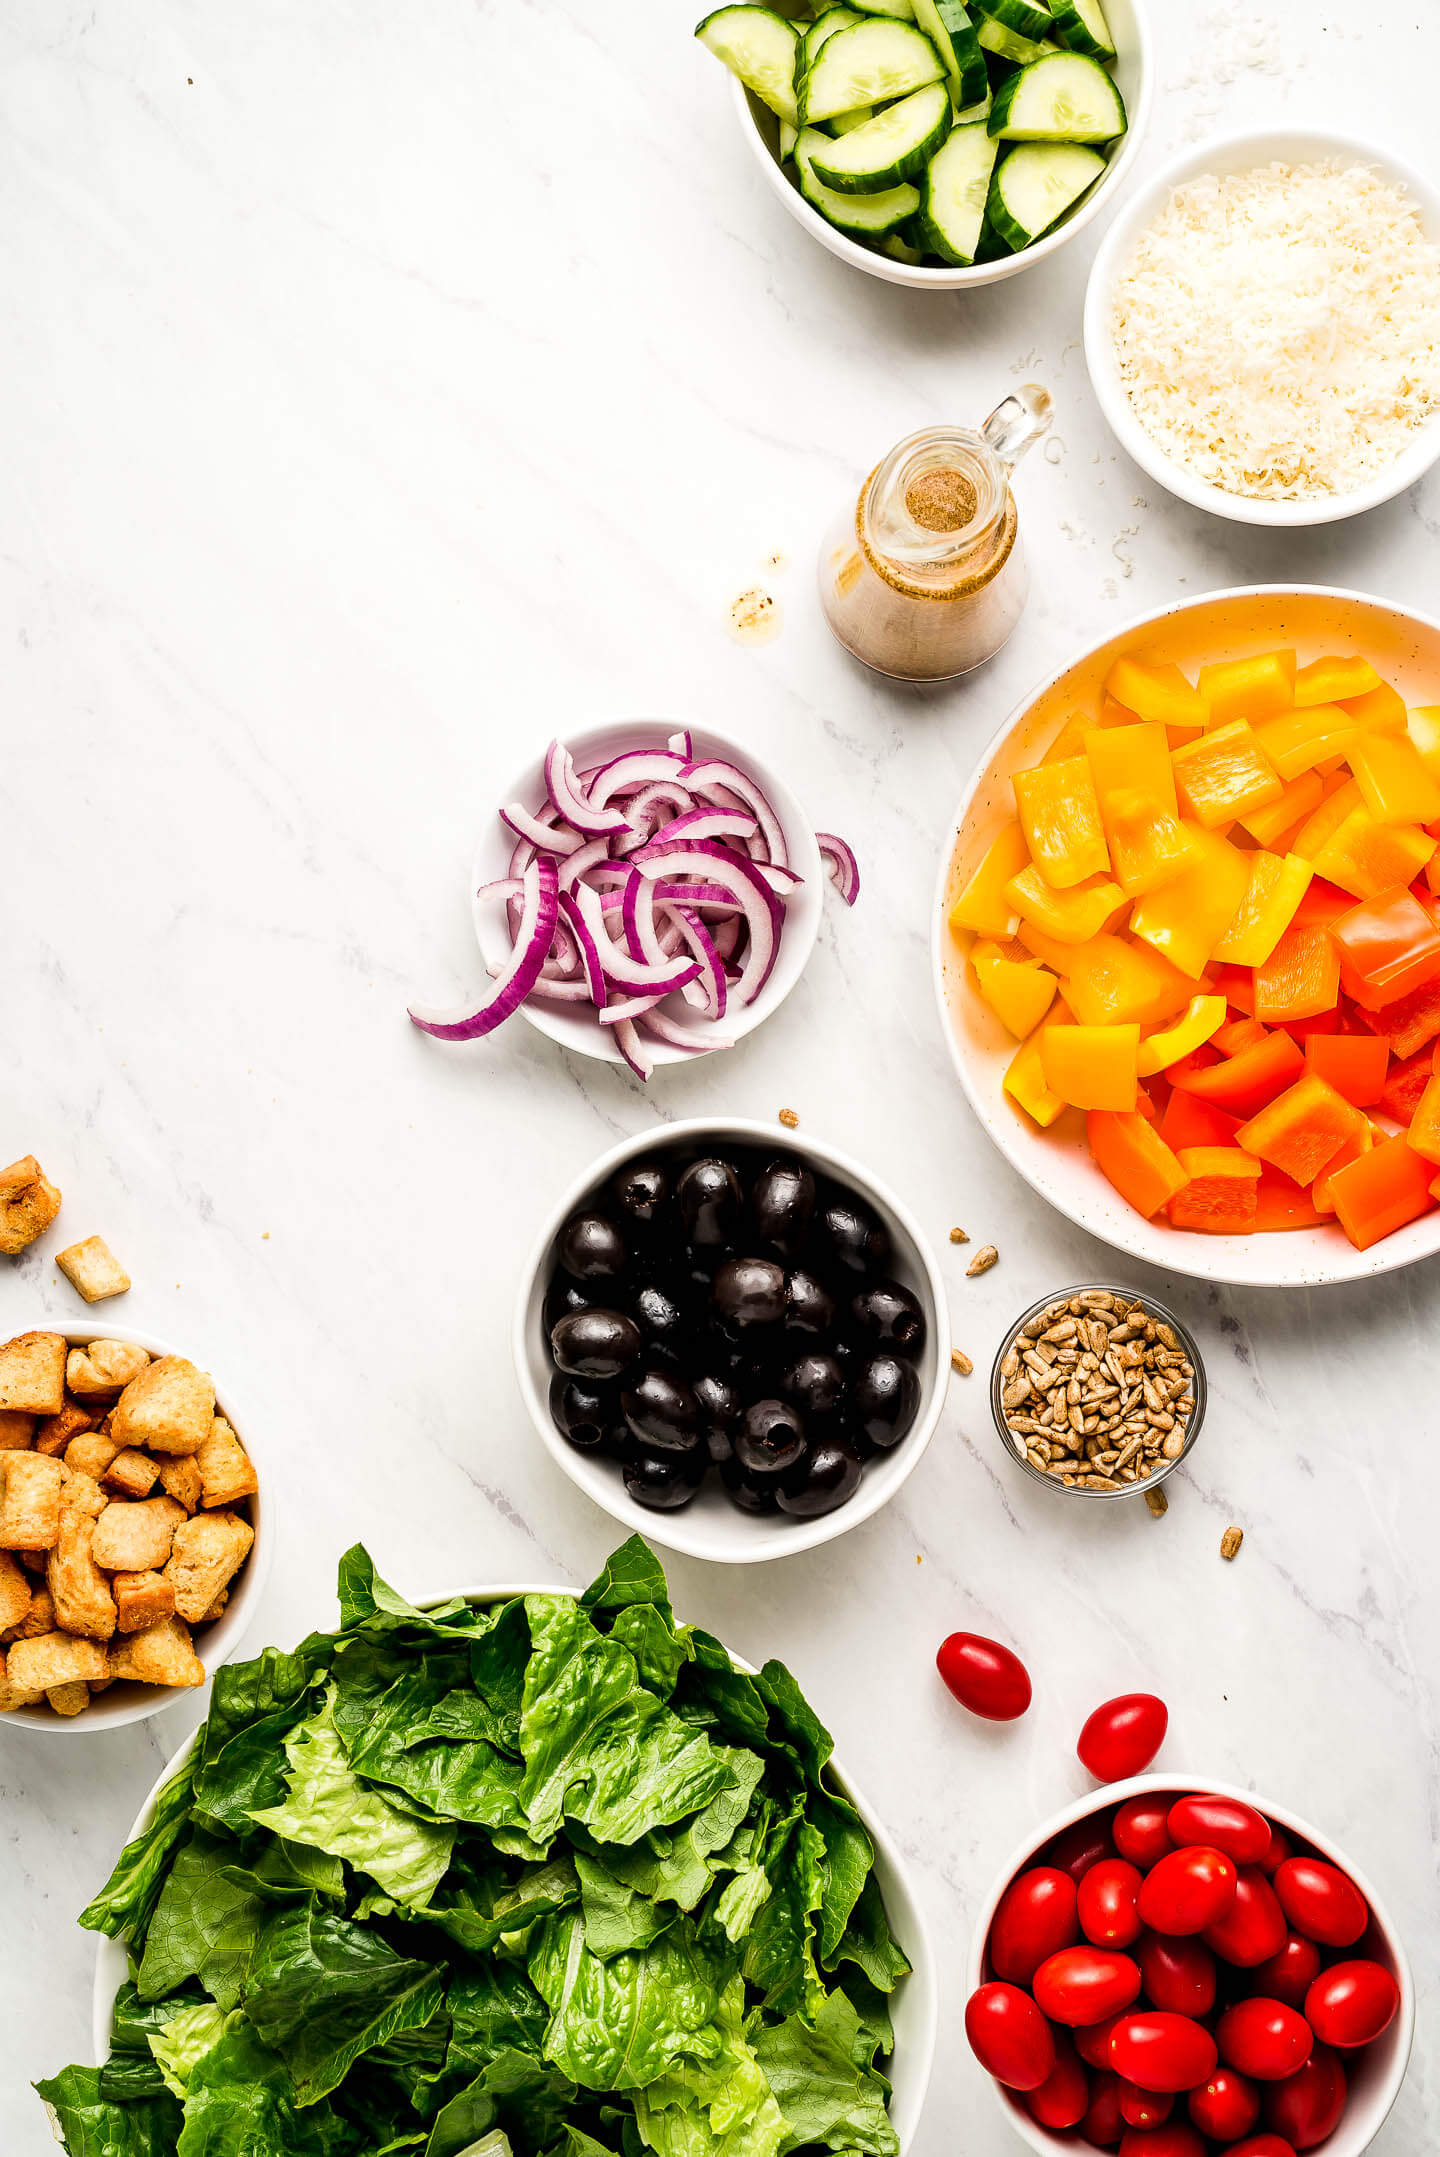 Ingredients on a marble surface in bowls- cucumbers, parmesan cheese, Italian dressing, bell peppers, onions, black olives, seeds, tomatoes, lettuce, and croutons.